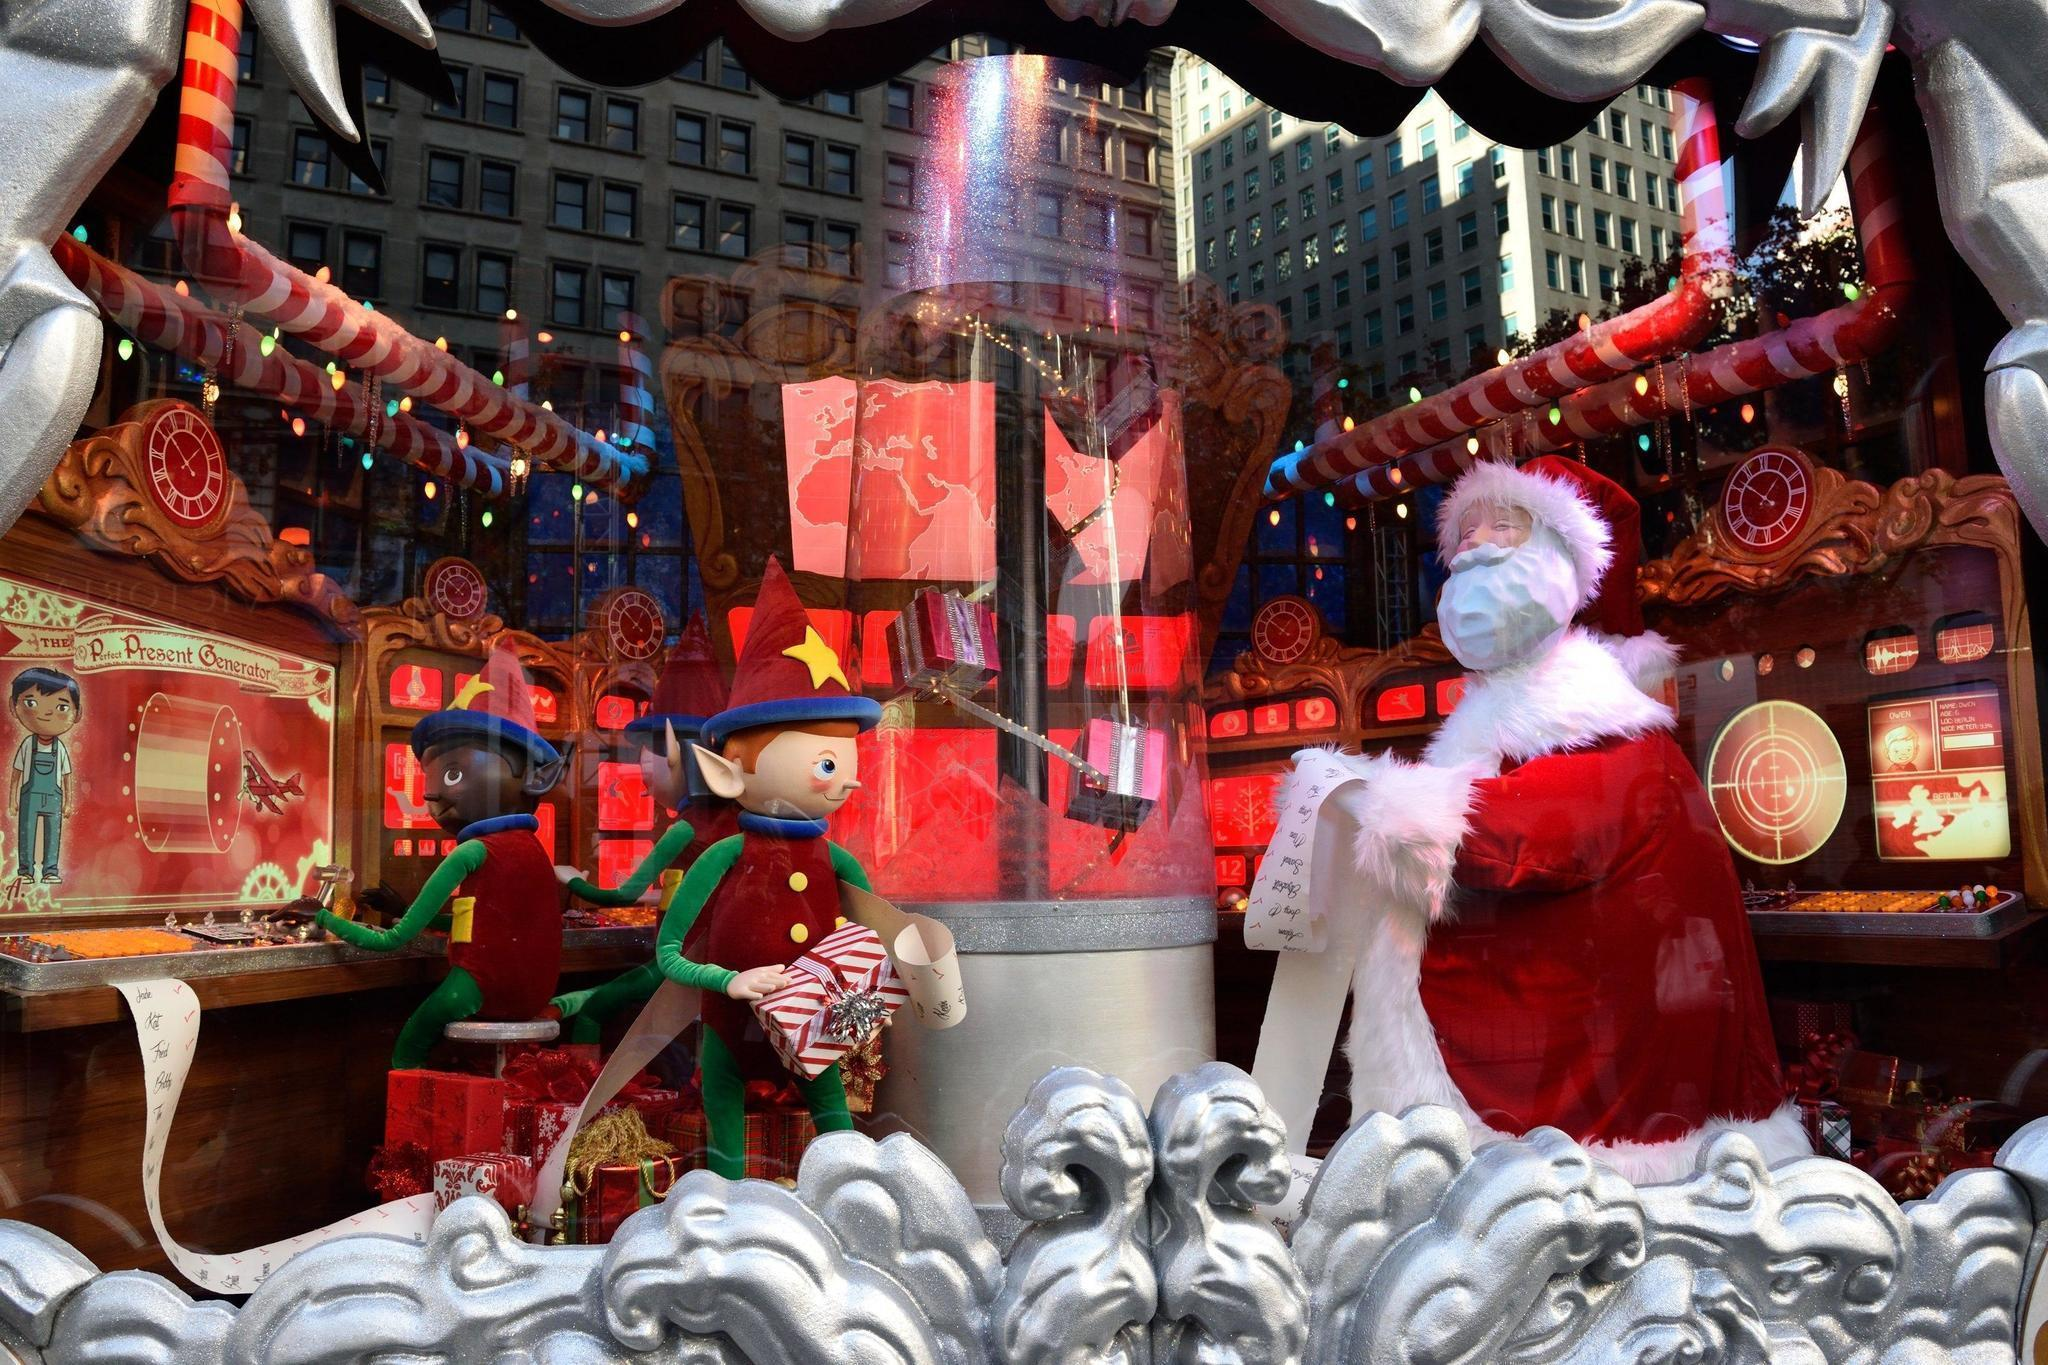 Behind The Scenes Of Macy S Iconic Holiday Window Display